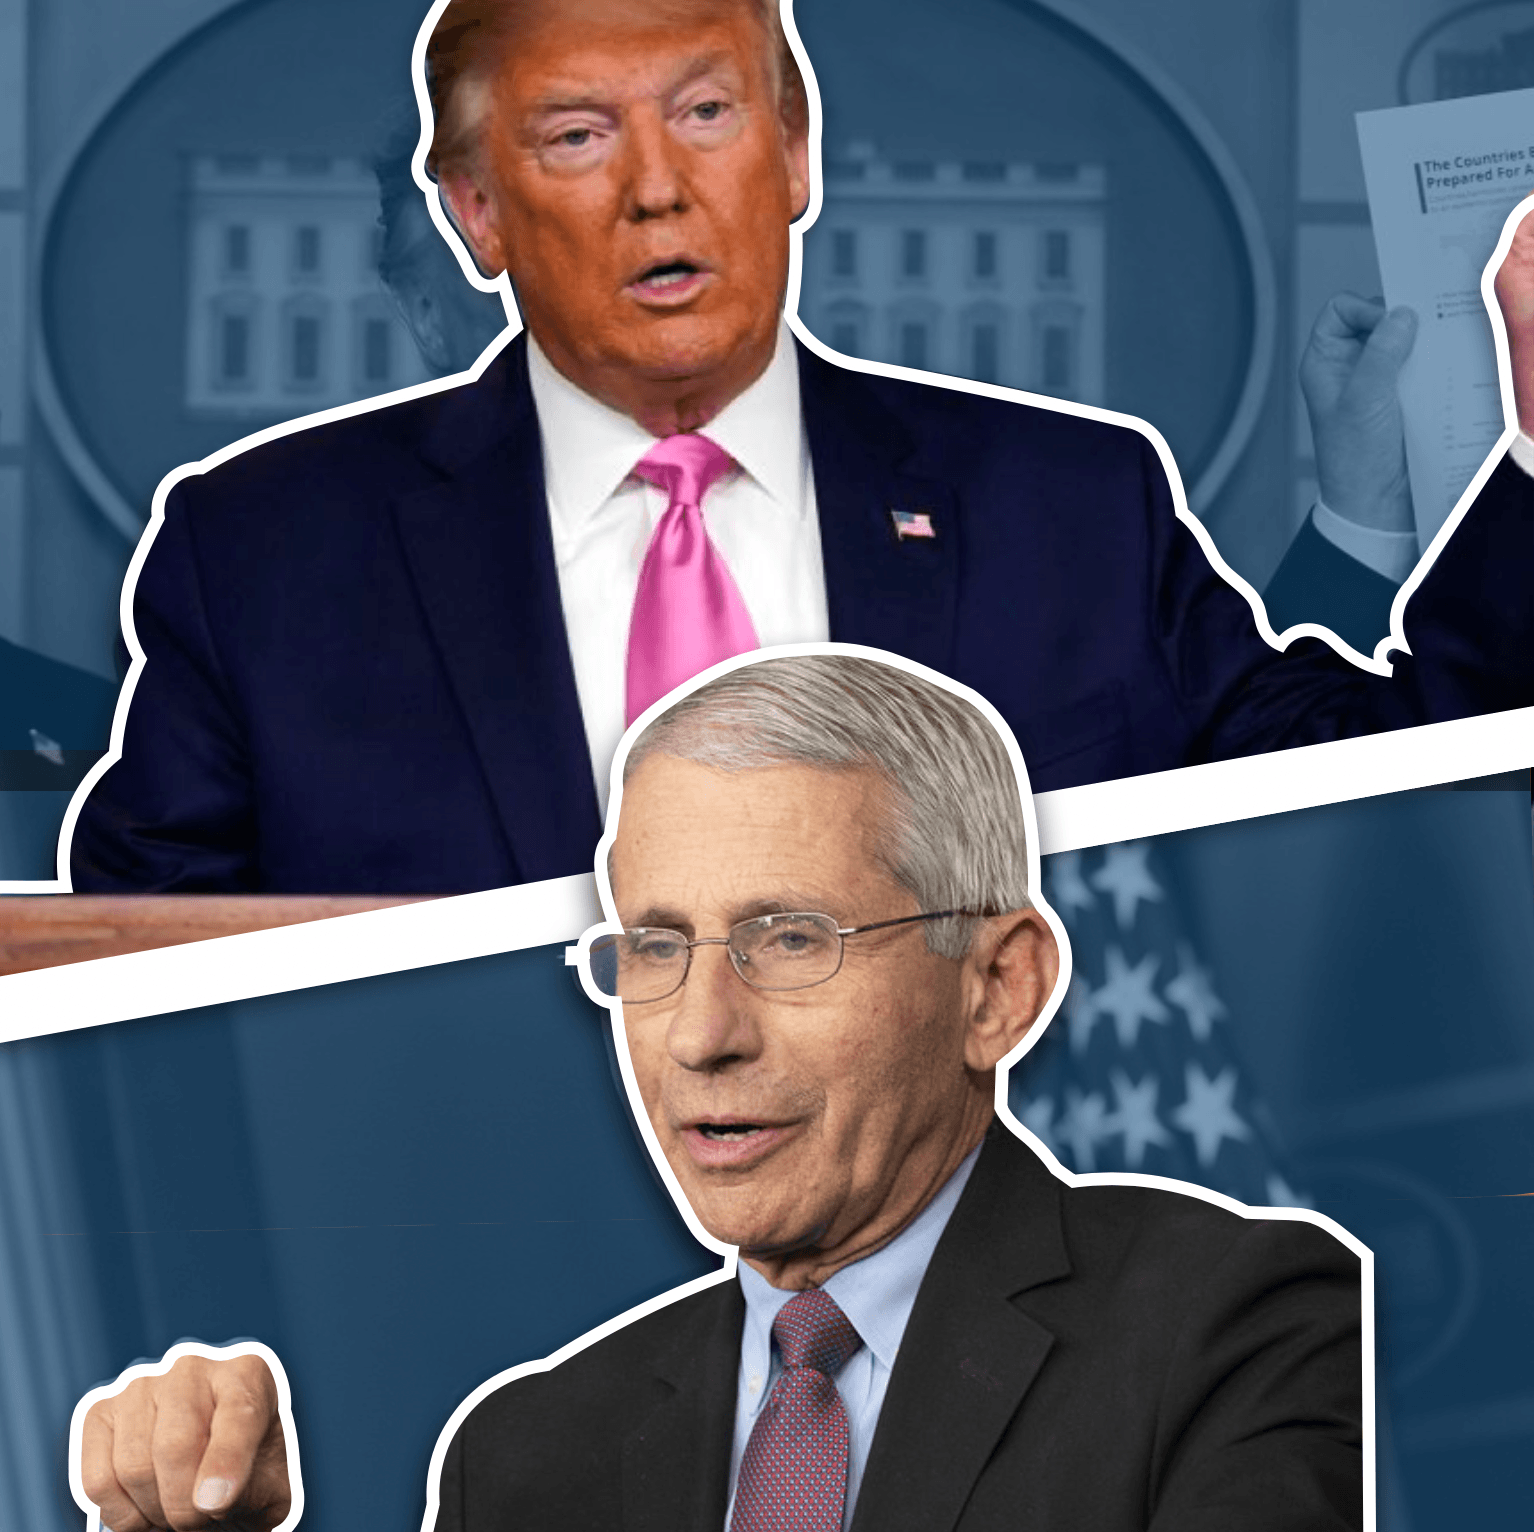 The Ongoing Battle Between Trump & Dr Fauci: Really Important & Inflated by the Media?